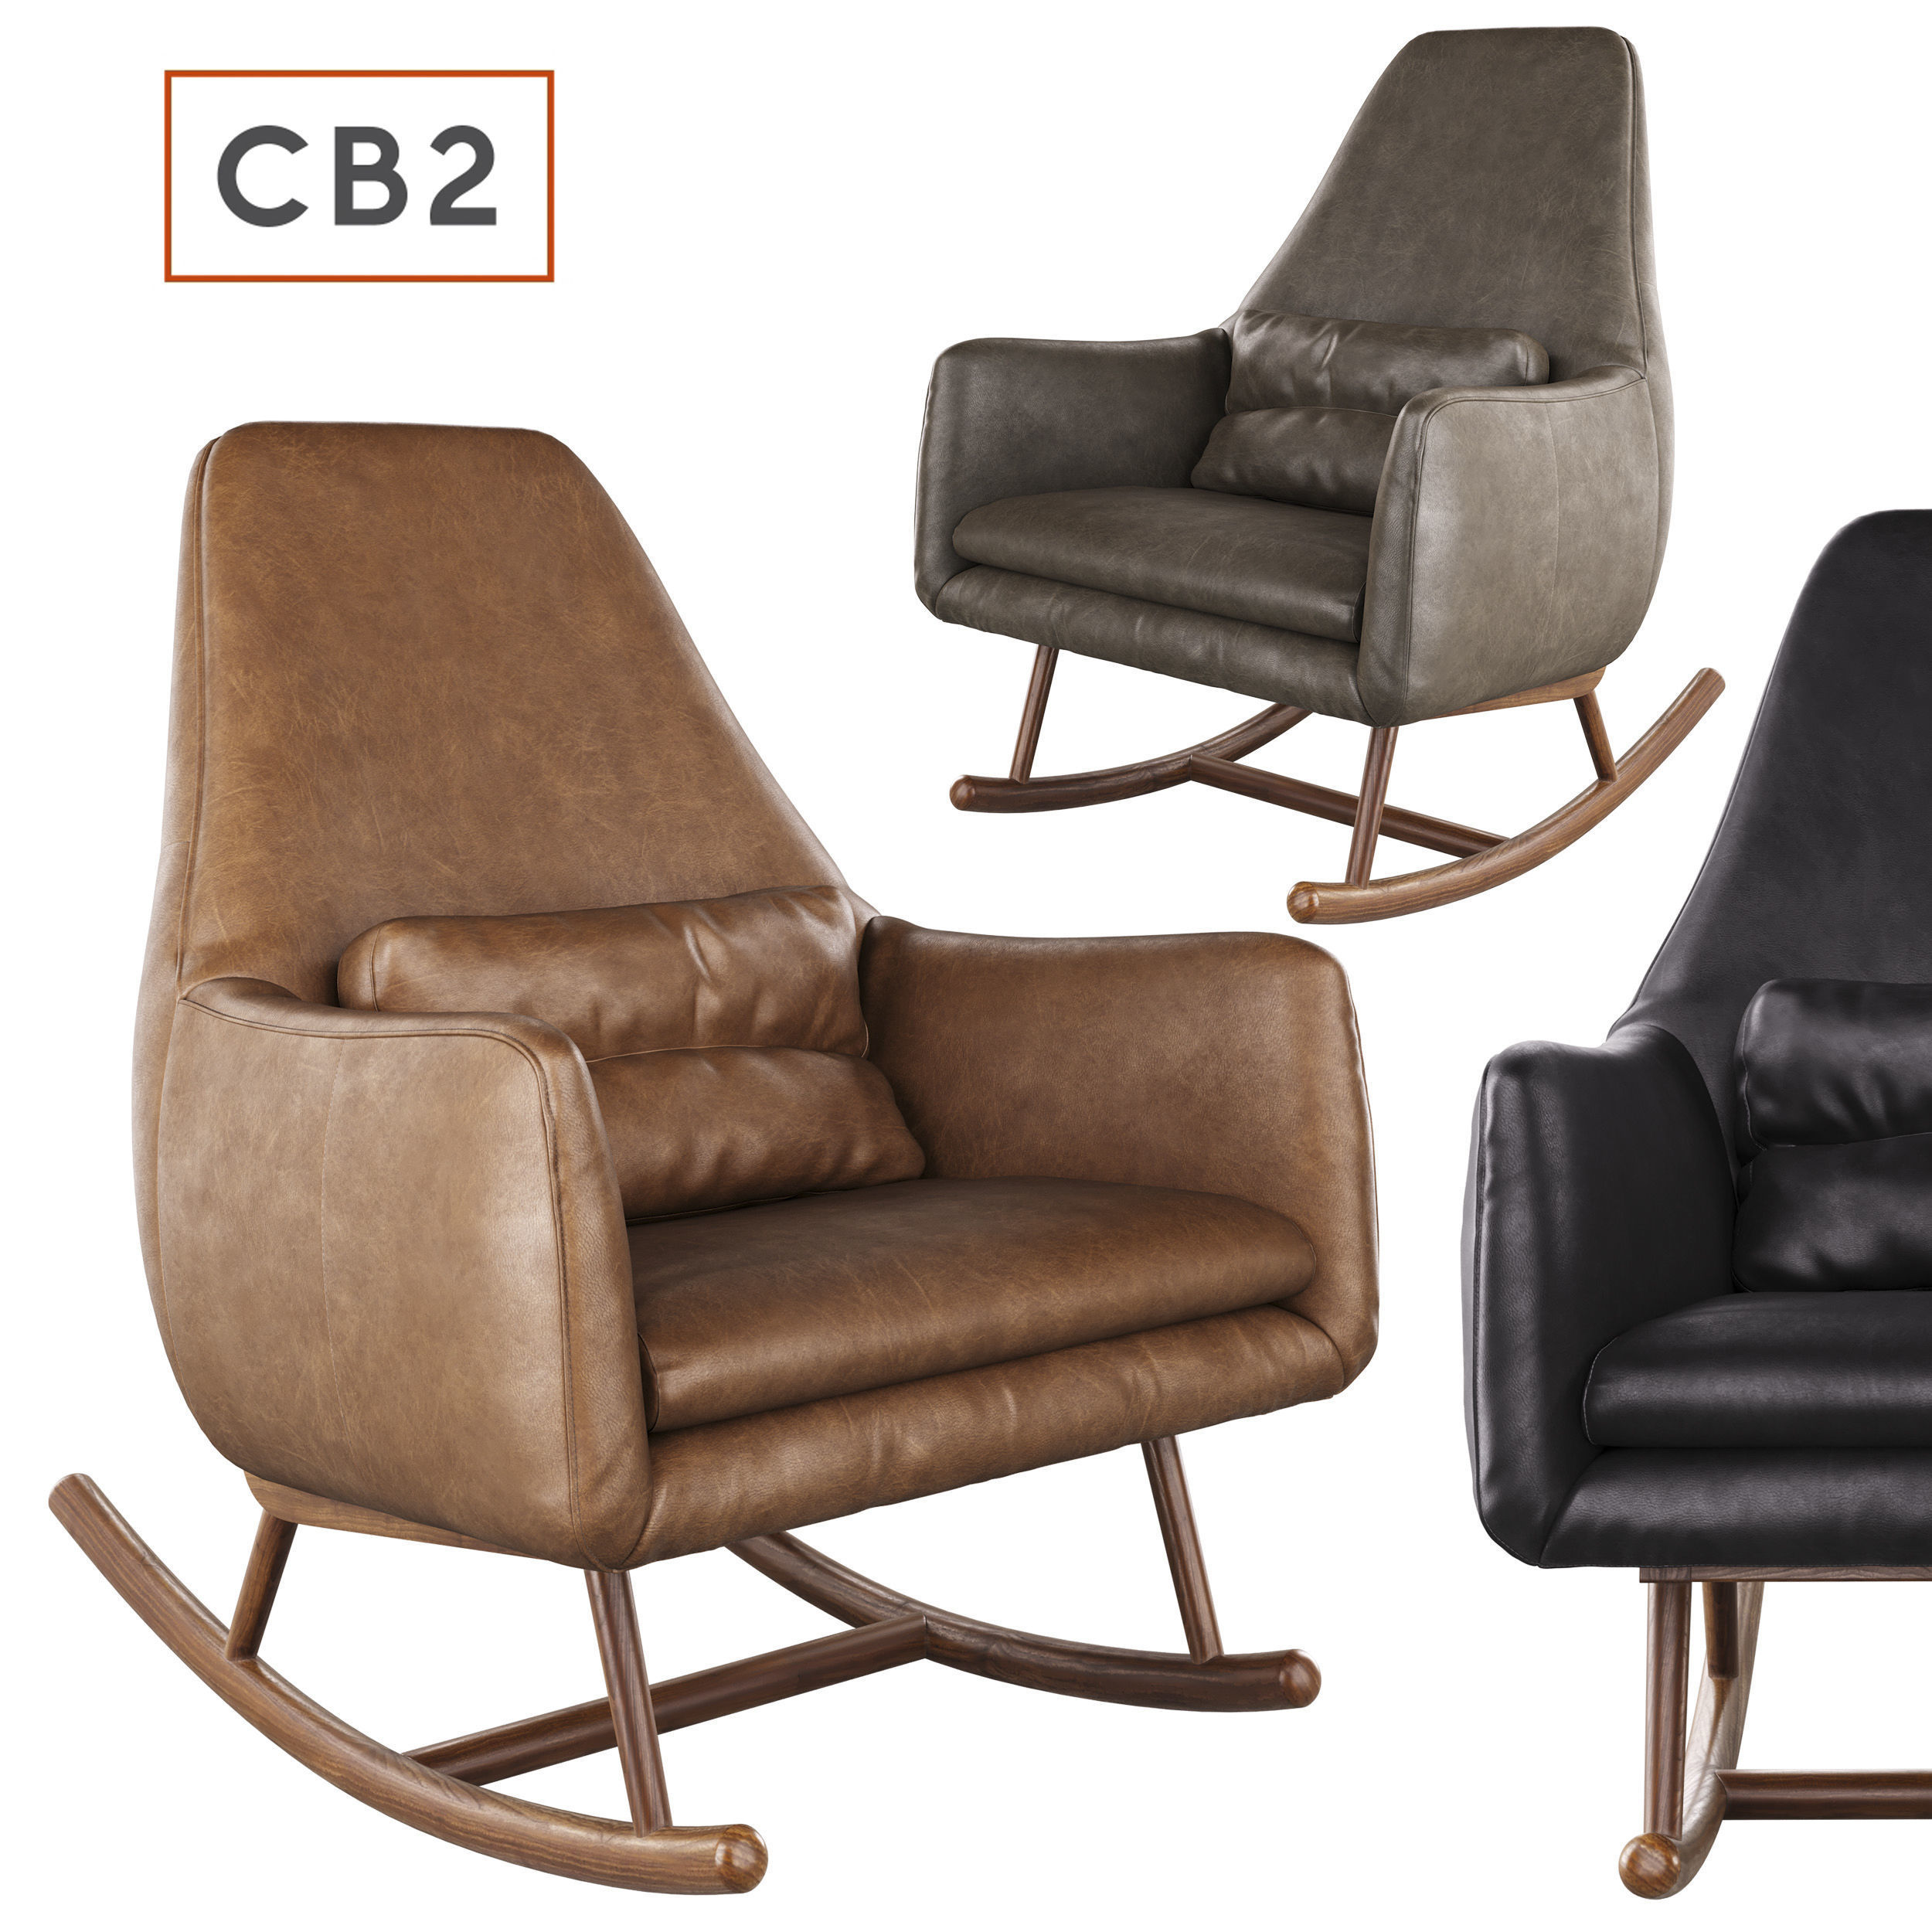 Leather Rocking Chair Cb2 Saic Quantam Leather Rocking Chair 3d Model